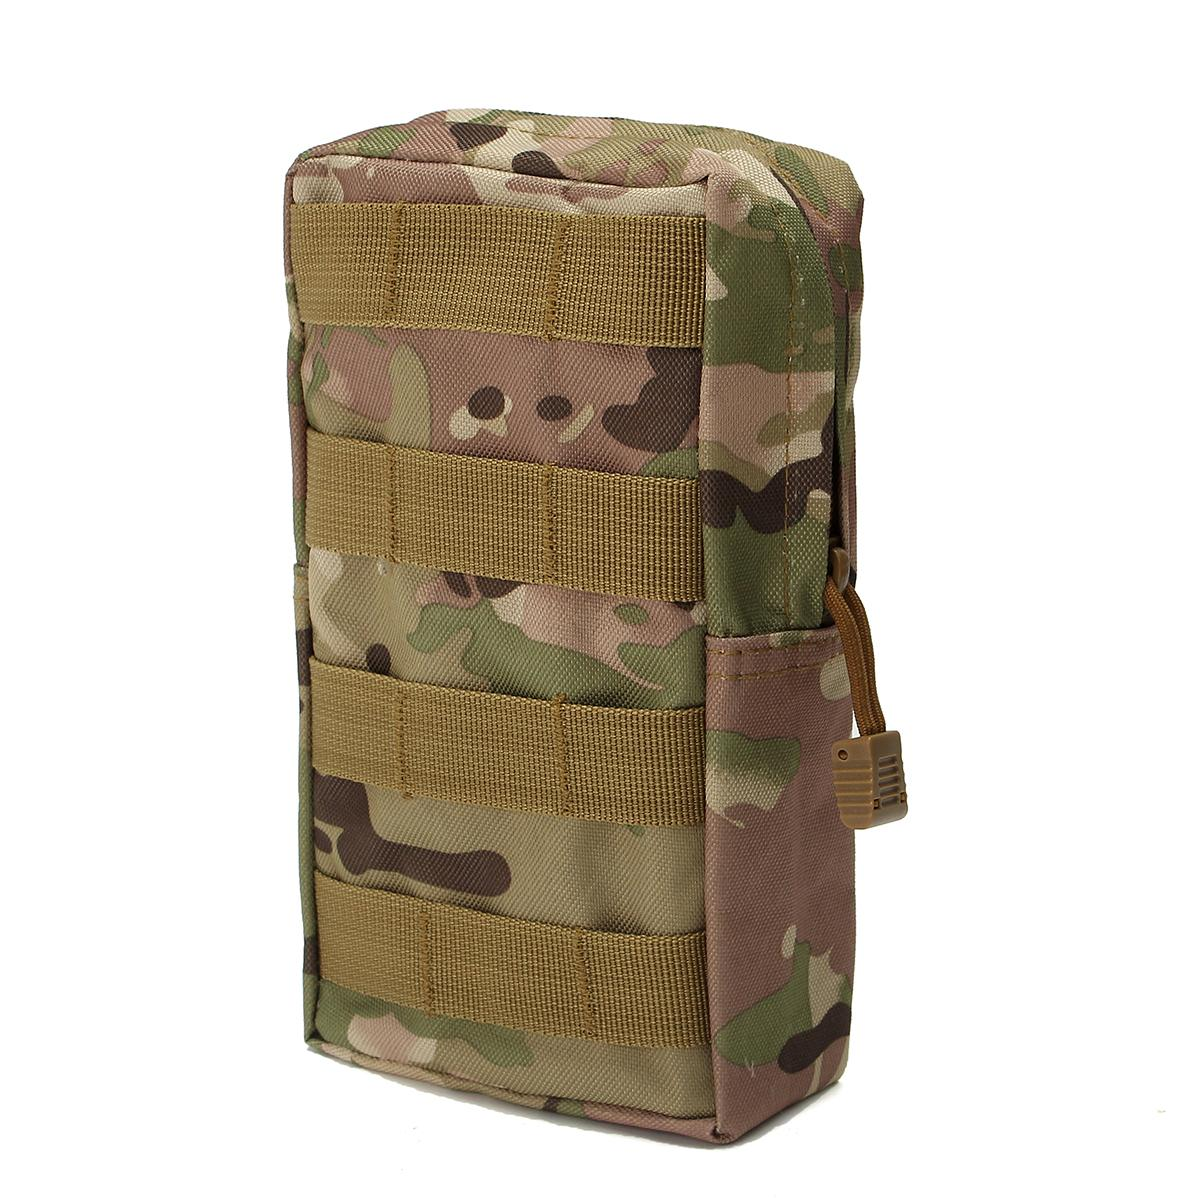 Nylon Waist Bag Tactical Molle Waterproof Medical First Aid Outdoor Bags Utility Emergency Storage Pouch Bag Emergency Kits